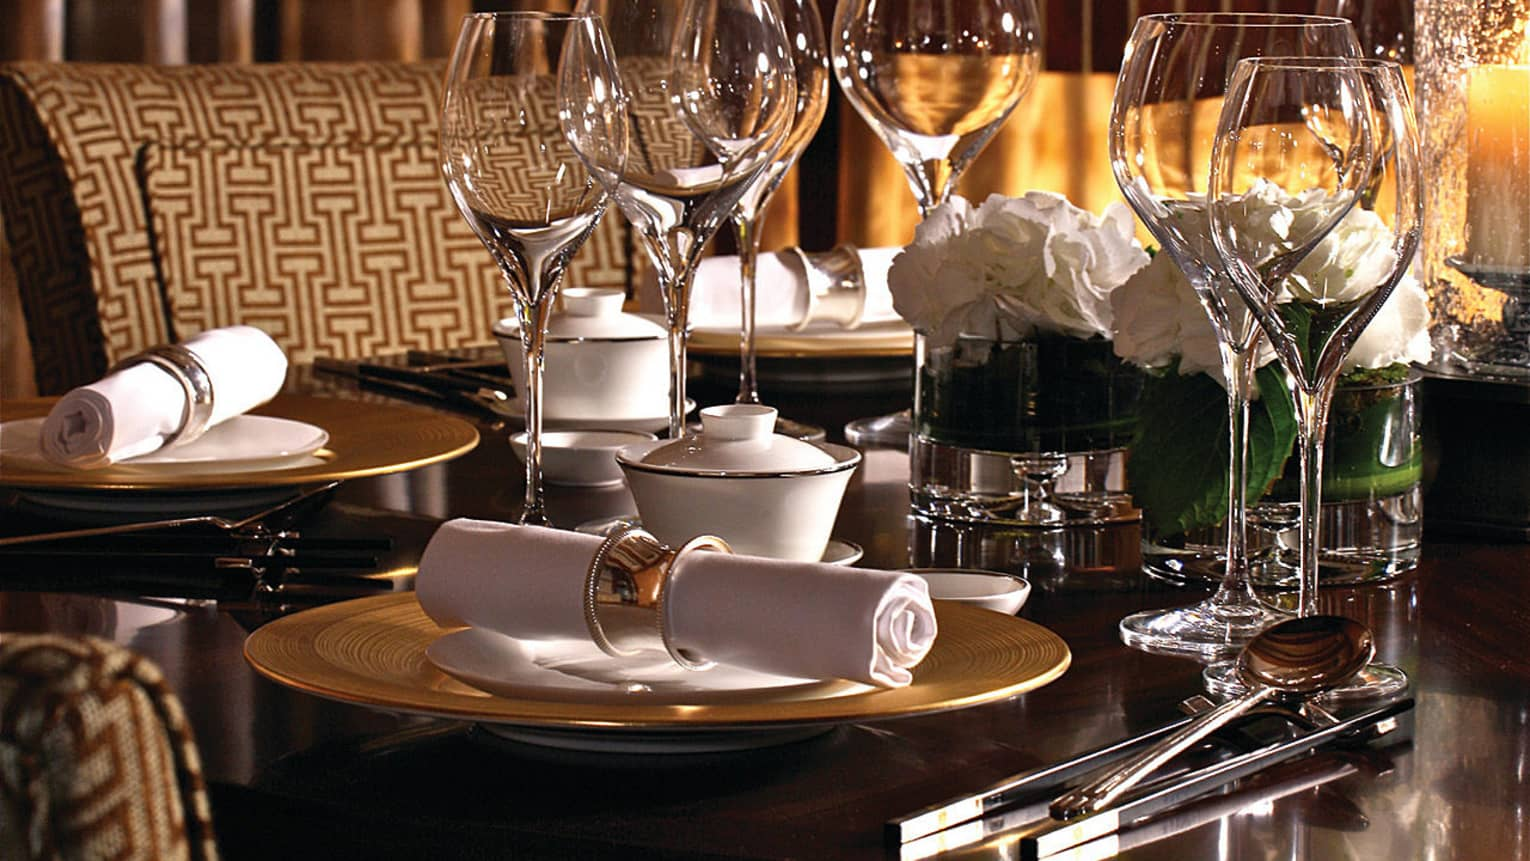 Close-up of dining table with empty wine glasses, place settings, cutlery rolled in white napkin